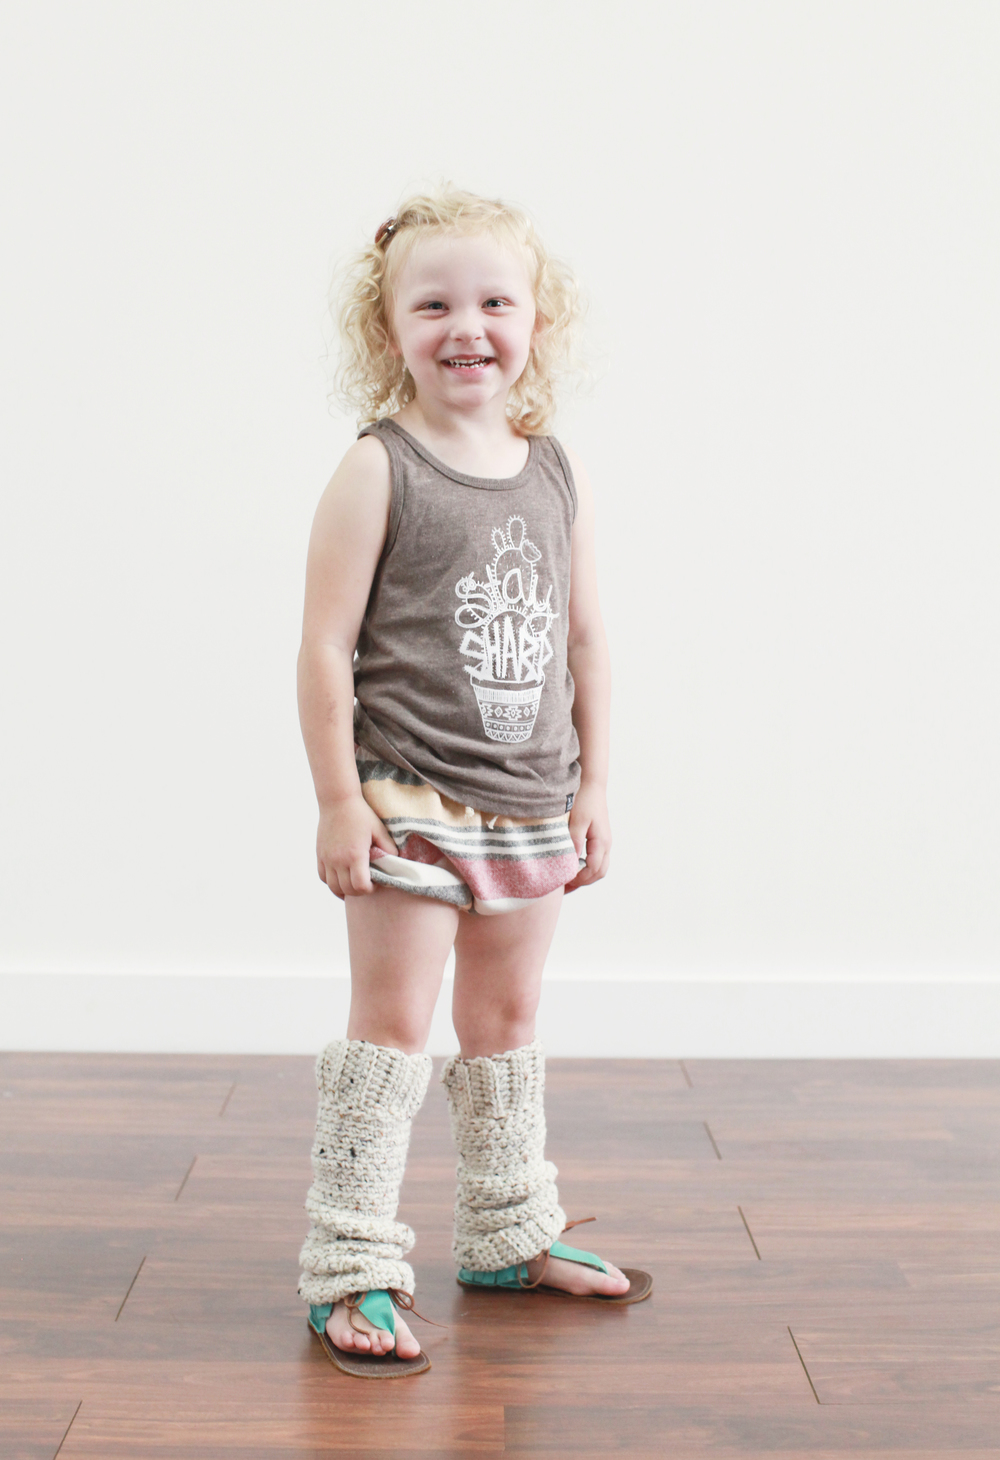 Shorties by The Mag Pie Co., legwarmers by The Crafted Co., sandals by Harper and Paisley